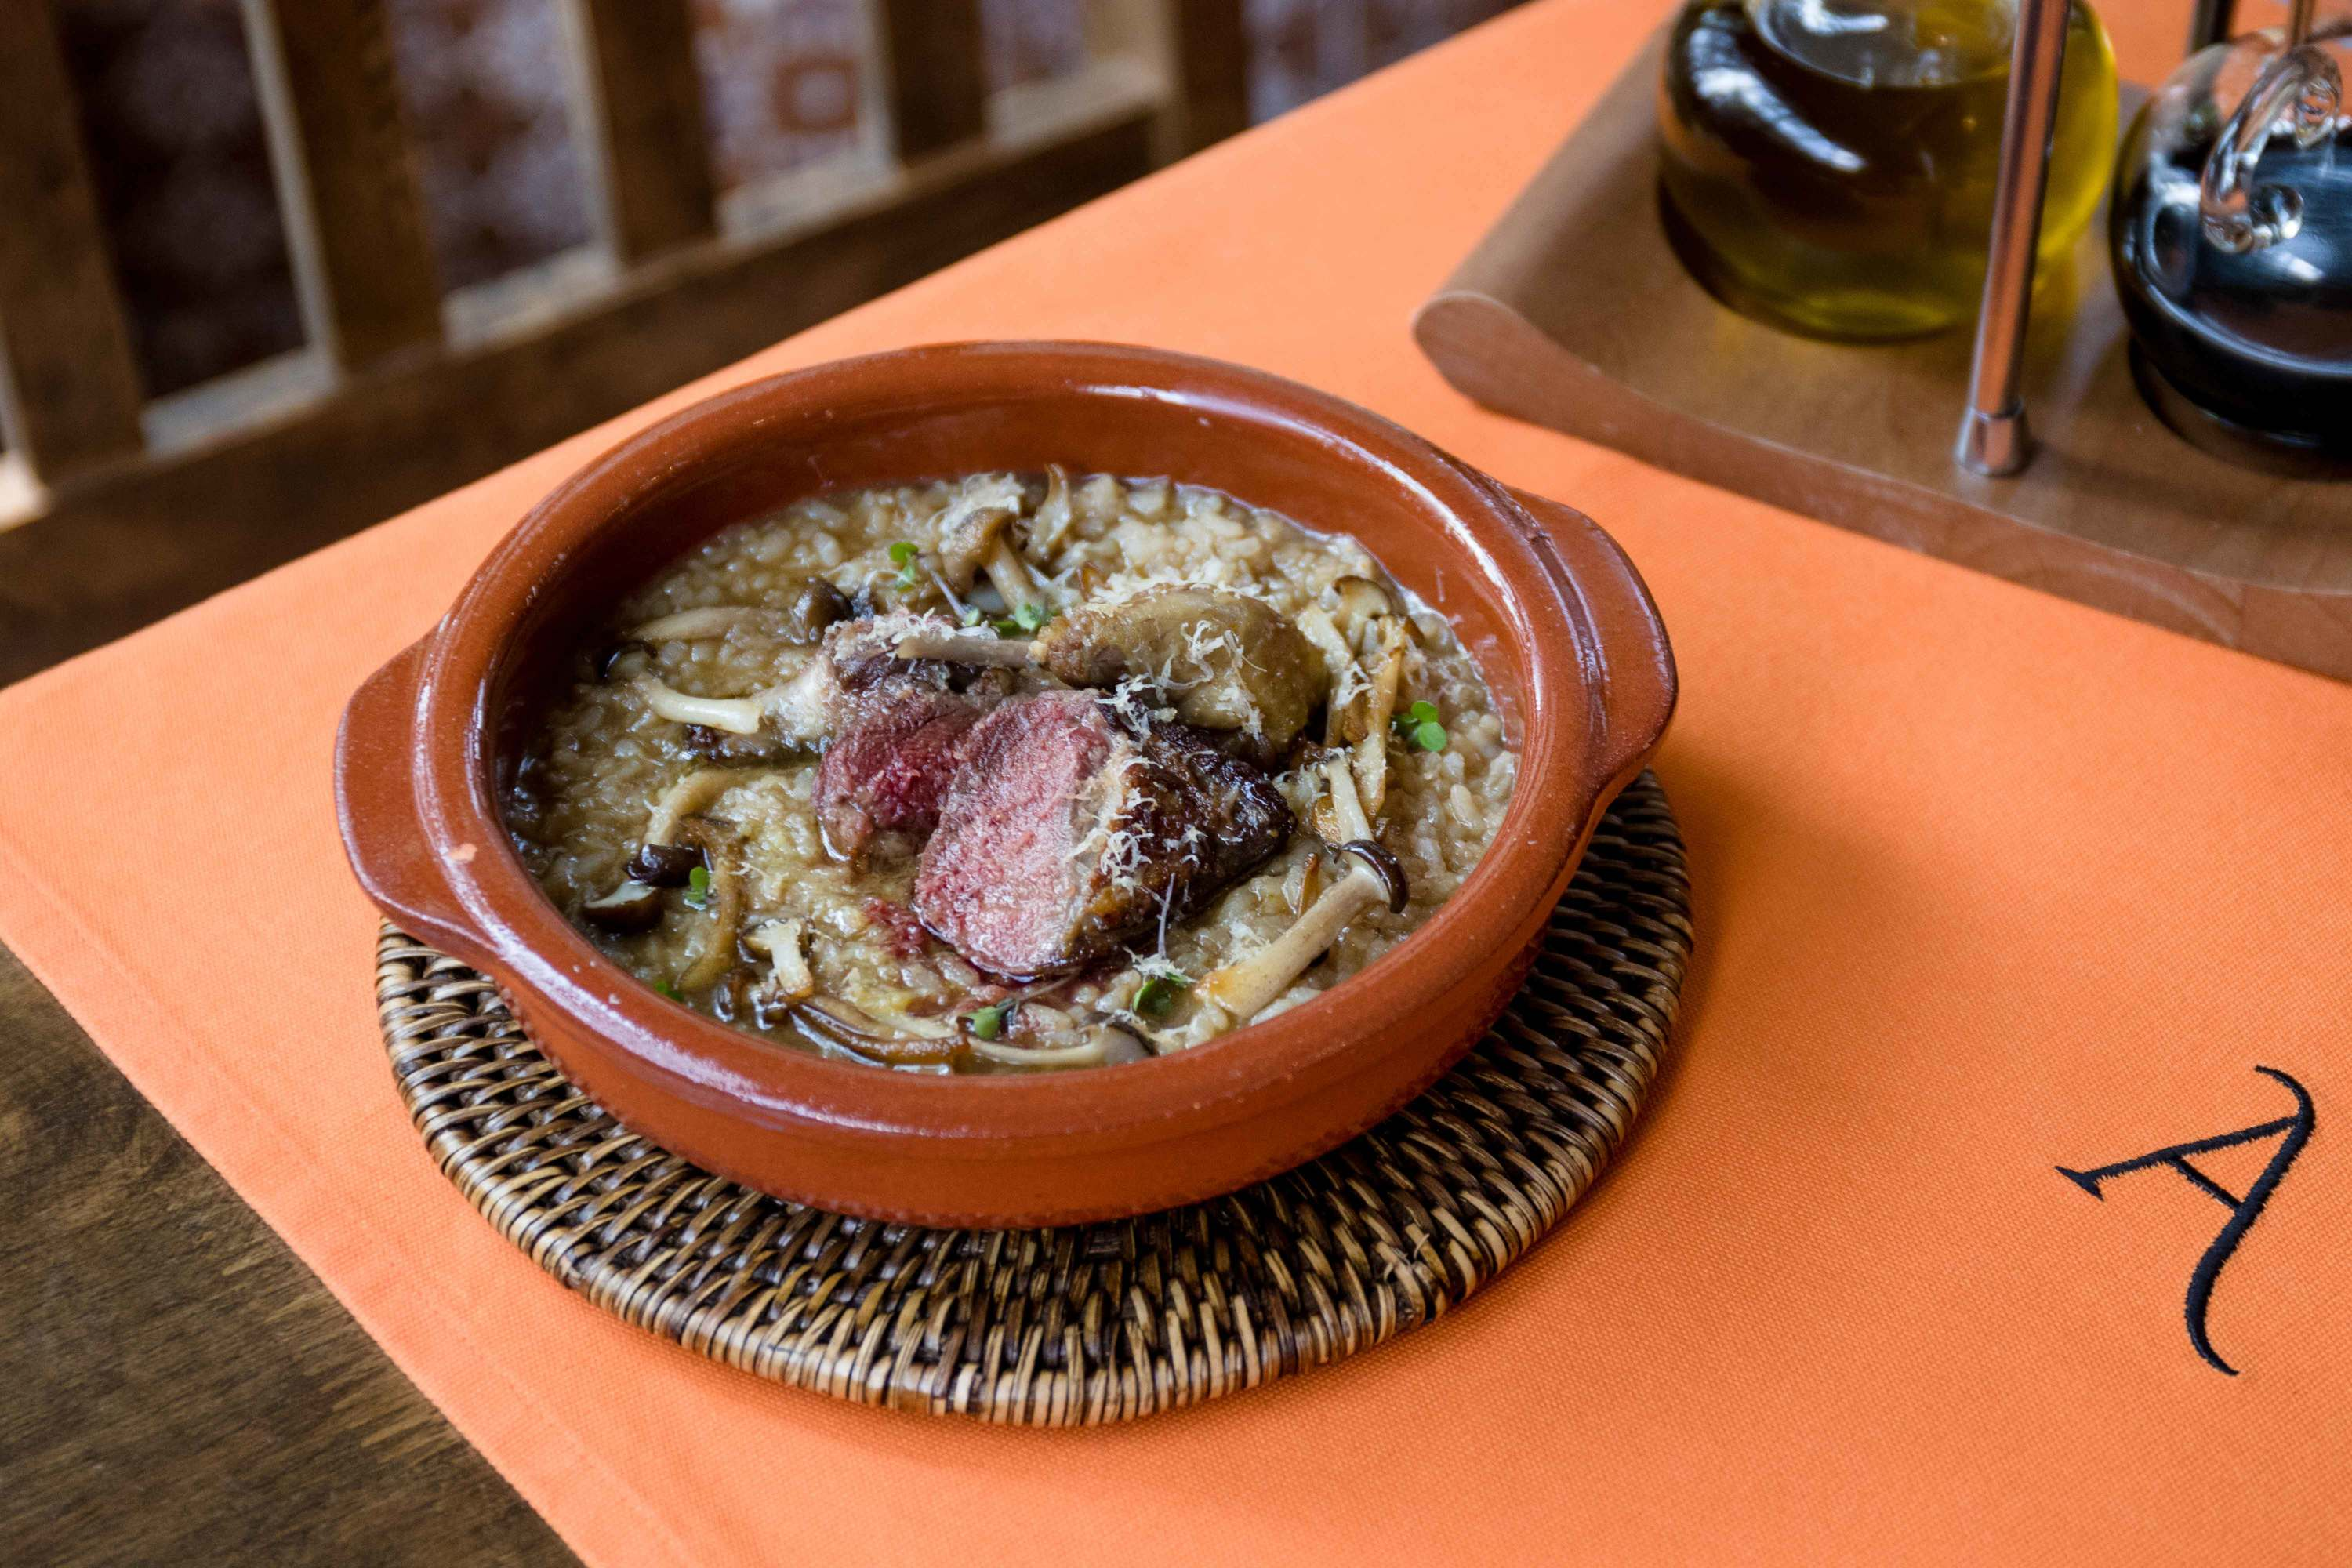 Arroz, the new Spanish restaurant in Sukhumvit